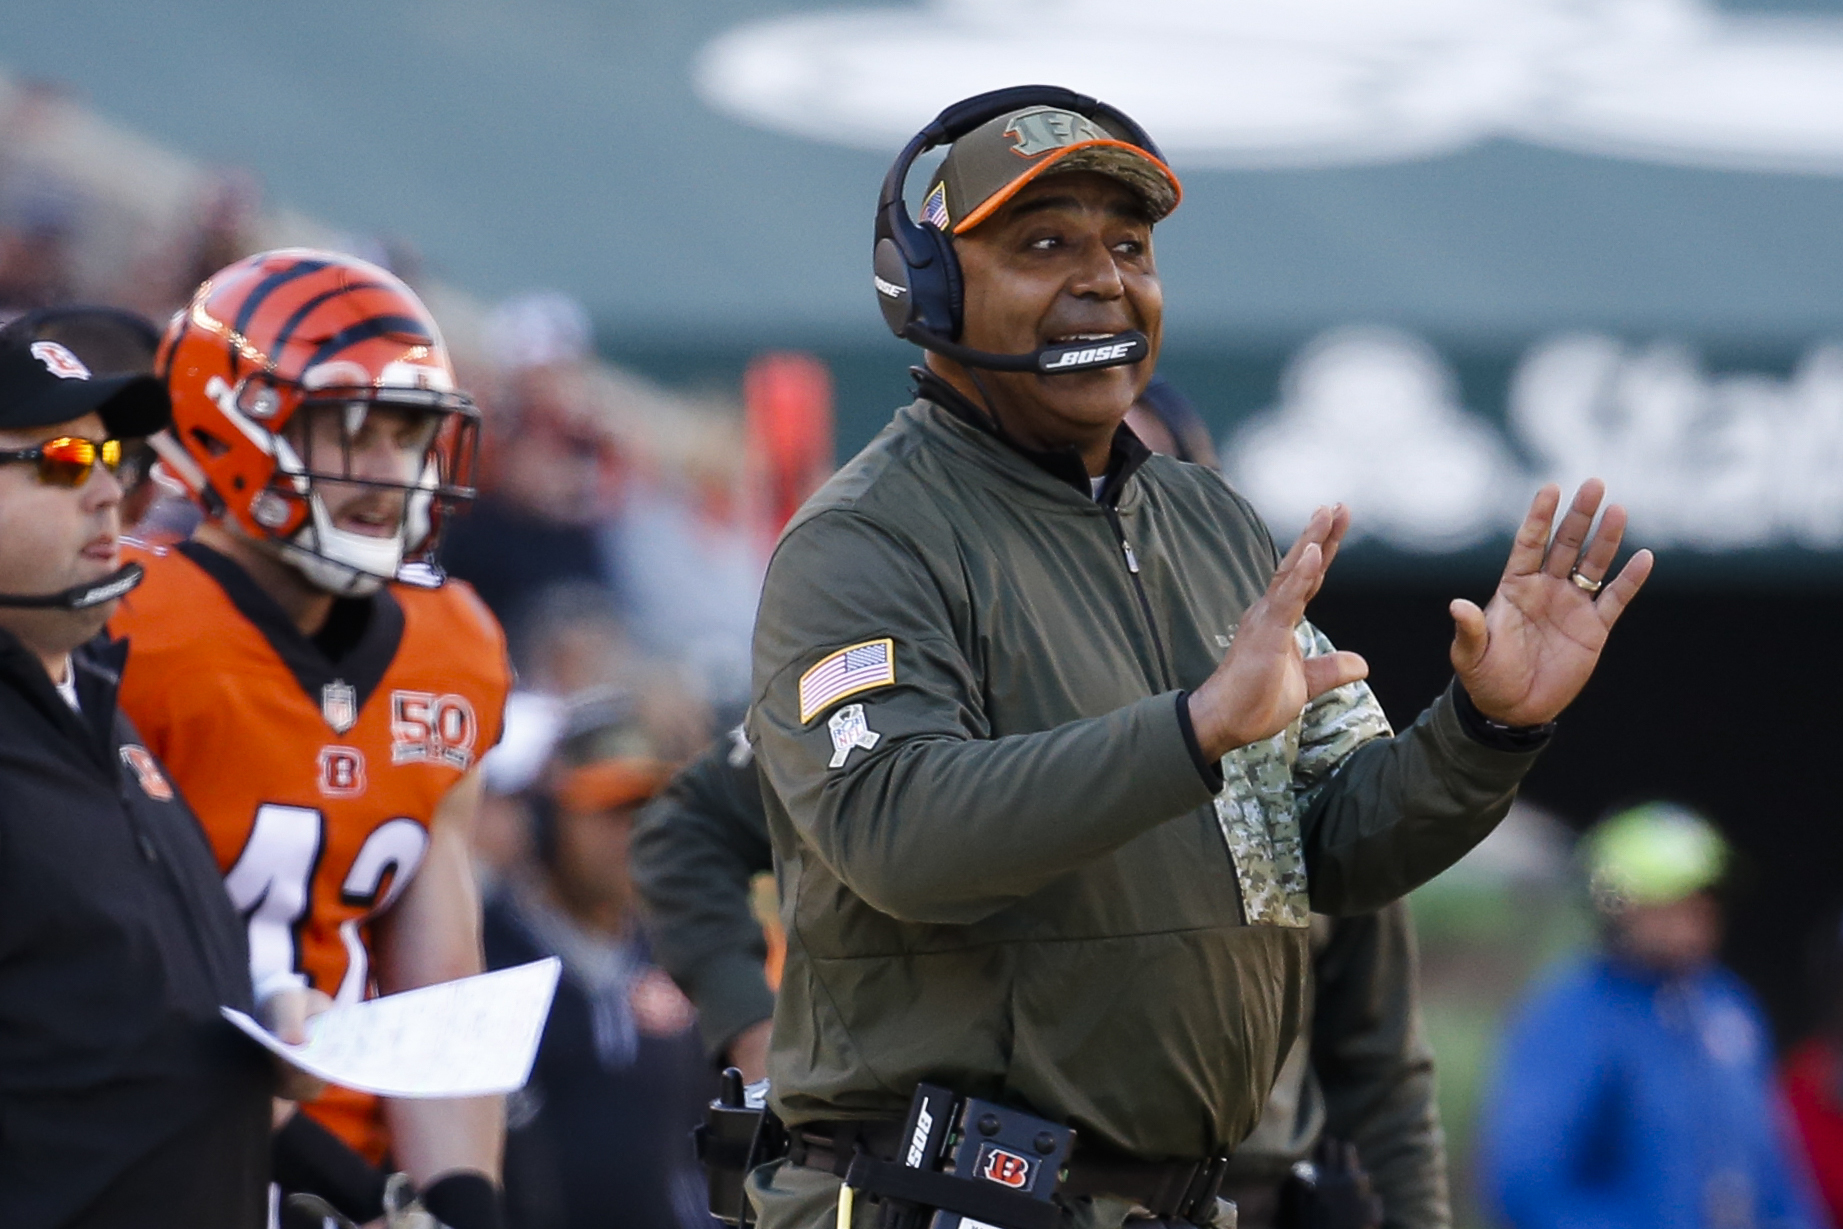 Cincinnati Bengals head coach Marvin Lewis works the sideline in the first half of an NFL football game against the Cleveland Browns, Sunday, Nov. 26, 2017, in Cincinnati. (AP Photo/Frank Victores)